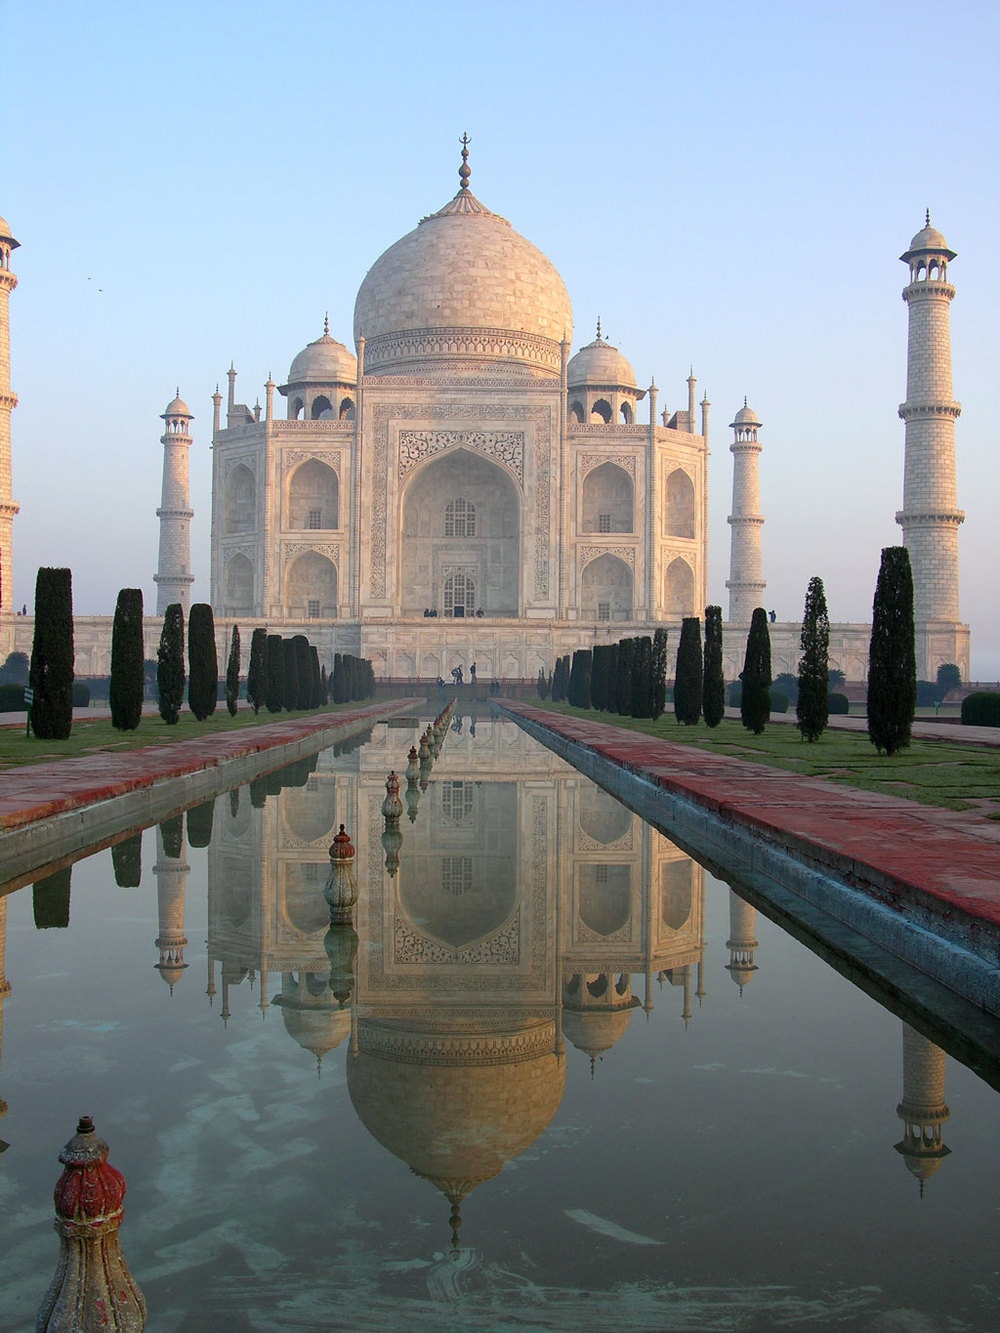 Taj Mahal   Photo credit: Sanjay Chatterji